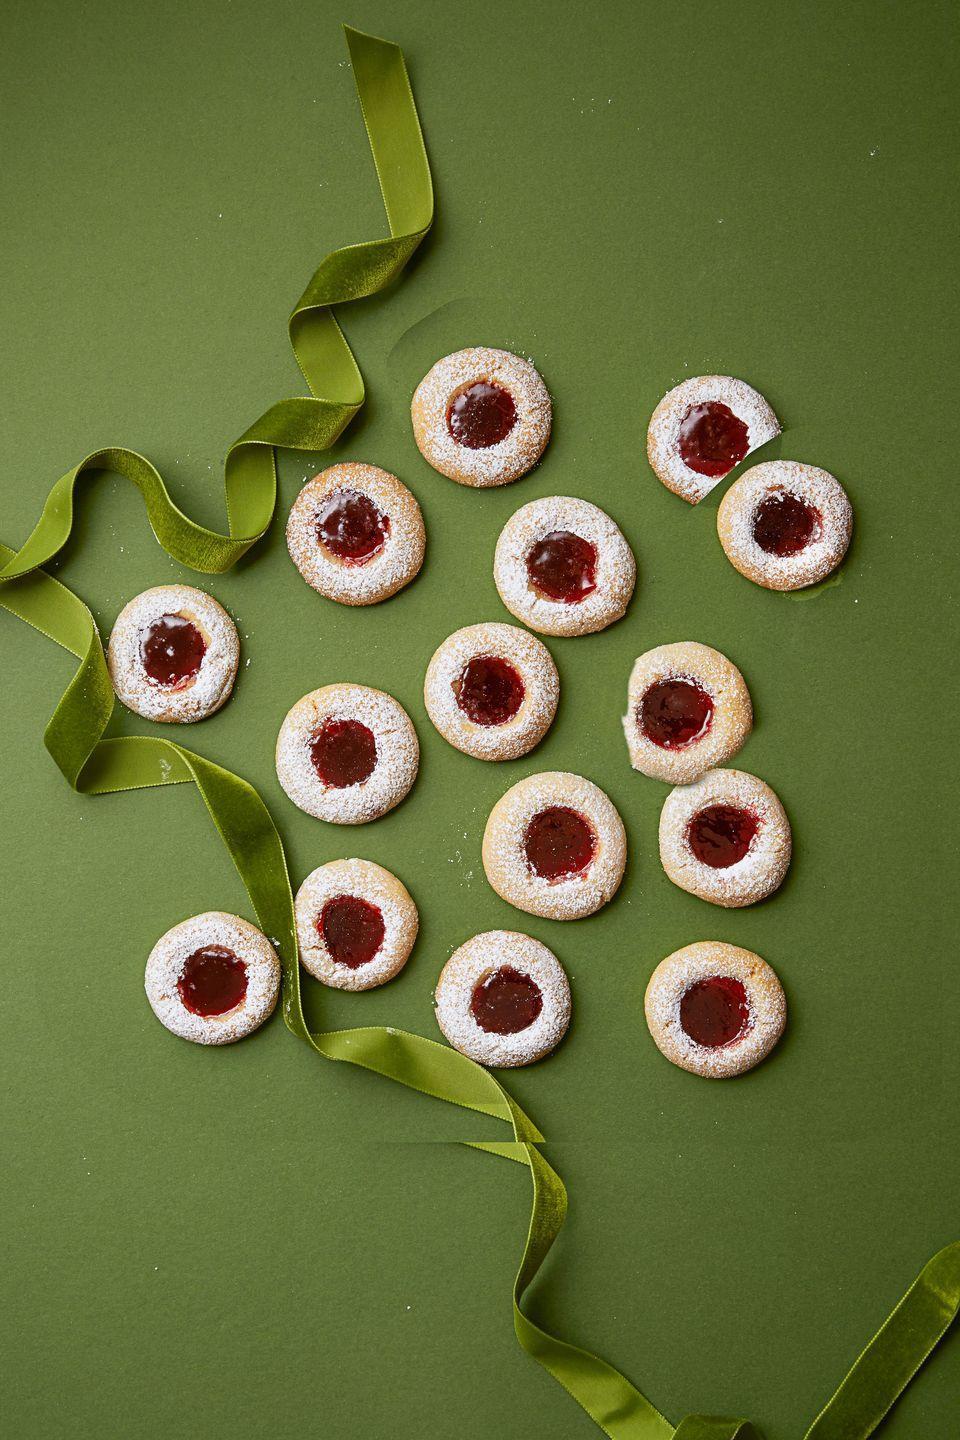 """<p>These Swedish cookies are called <em>Hallongrotta</em>, meaning """"raspberry cave"""". We added a little honey for extra sweetness.</p><p><em><a href=""""https://www.goodhousekeeping.com/food-recipes/dessert/a35760/razzy-jammy-thumbprints/"""" rel=""""nofollow noopener"""" target=""""_blank"""" data-ylk=""""slk:Get the recipe for Raspberry Jam Thumbprints »"""" class=""""link rapid-noclick-resp"""">Get the recipe for Raspberry Jam Thumbprints »</a></em></p>"""